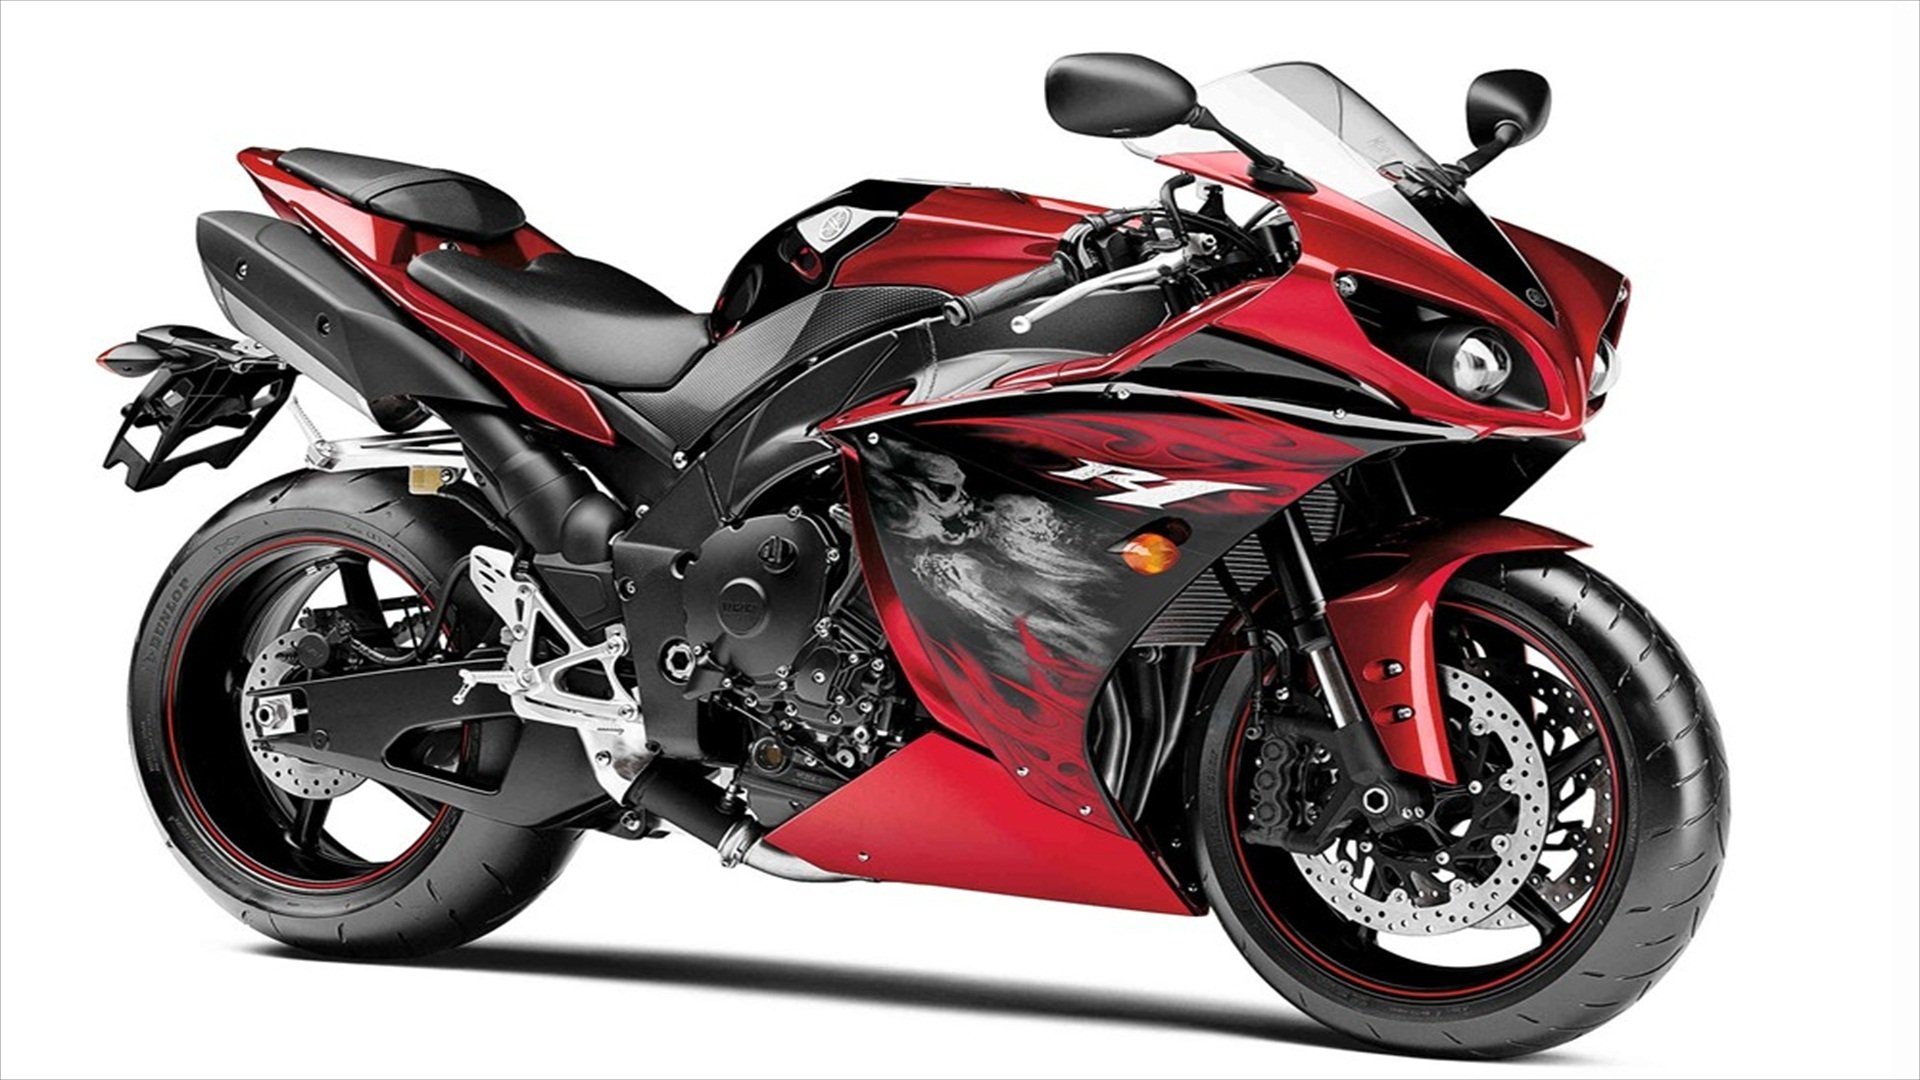 yamaha r1 full hd wallpaper and background image 1920x1080 id 142069. Black Bedroom Furniture Sets. Home Design Ideas